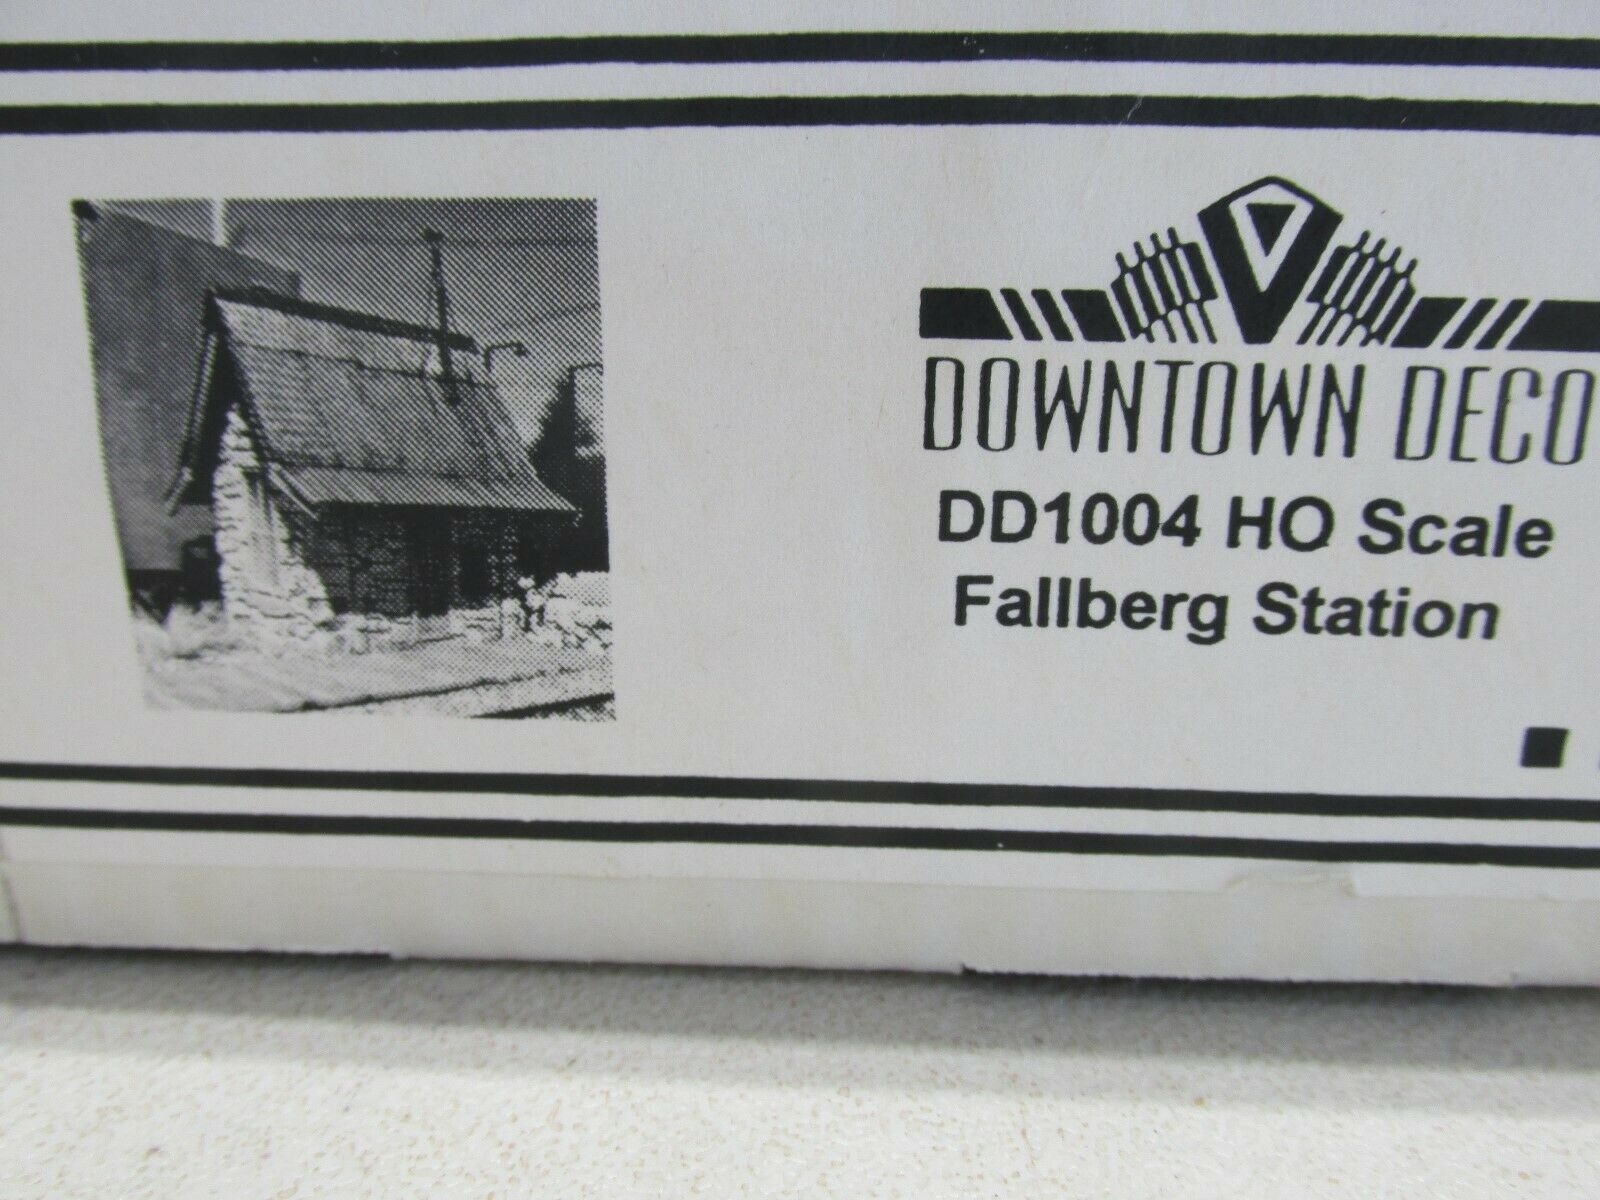 DOWNTOWN DECO  DD 1004 FALLBERG STATION BUILDING KIT  HO SCALE